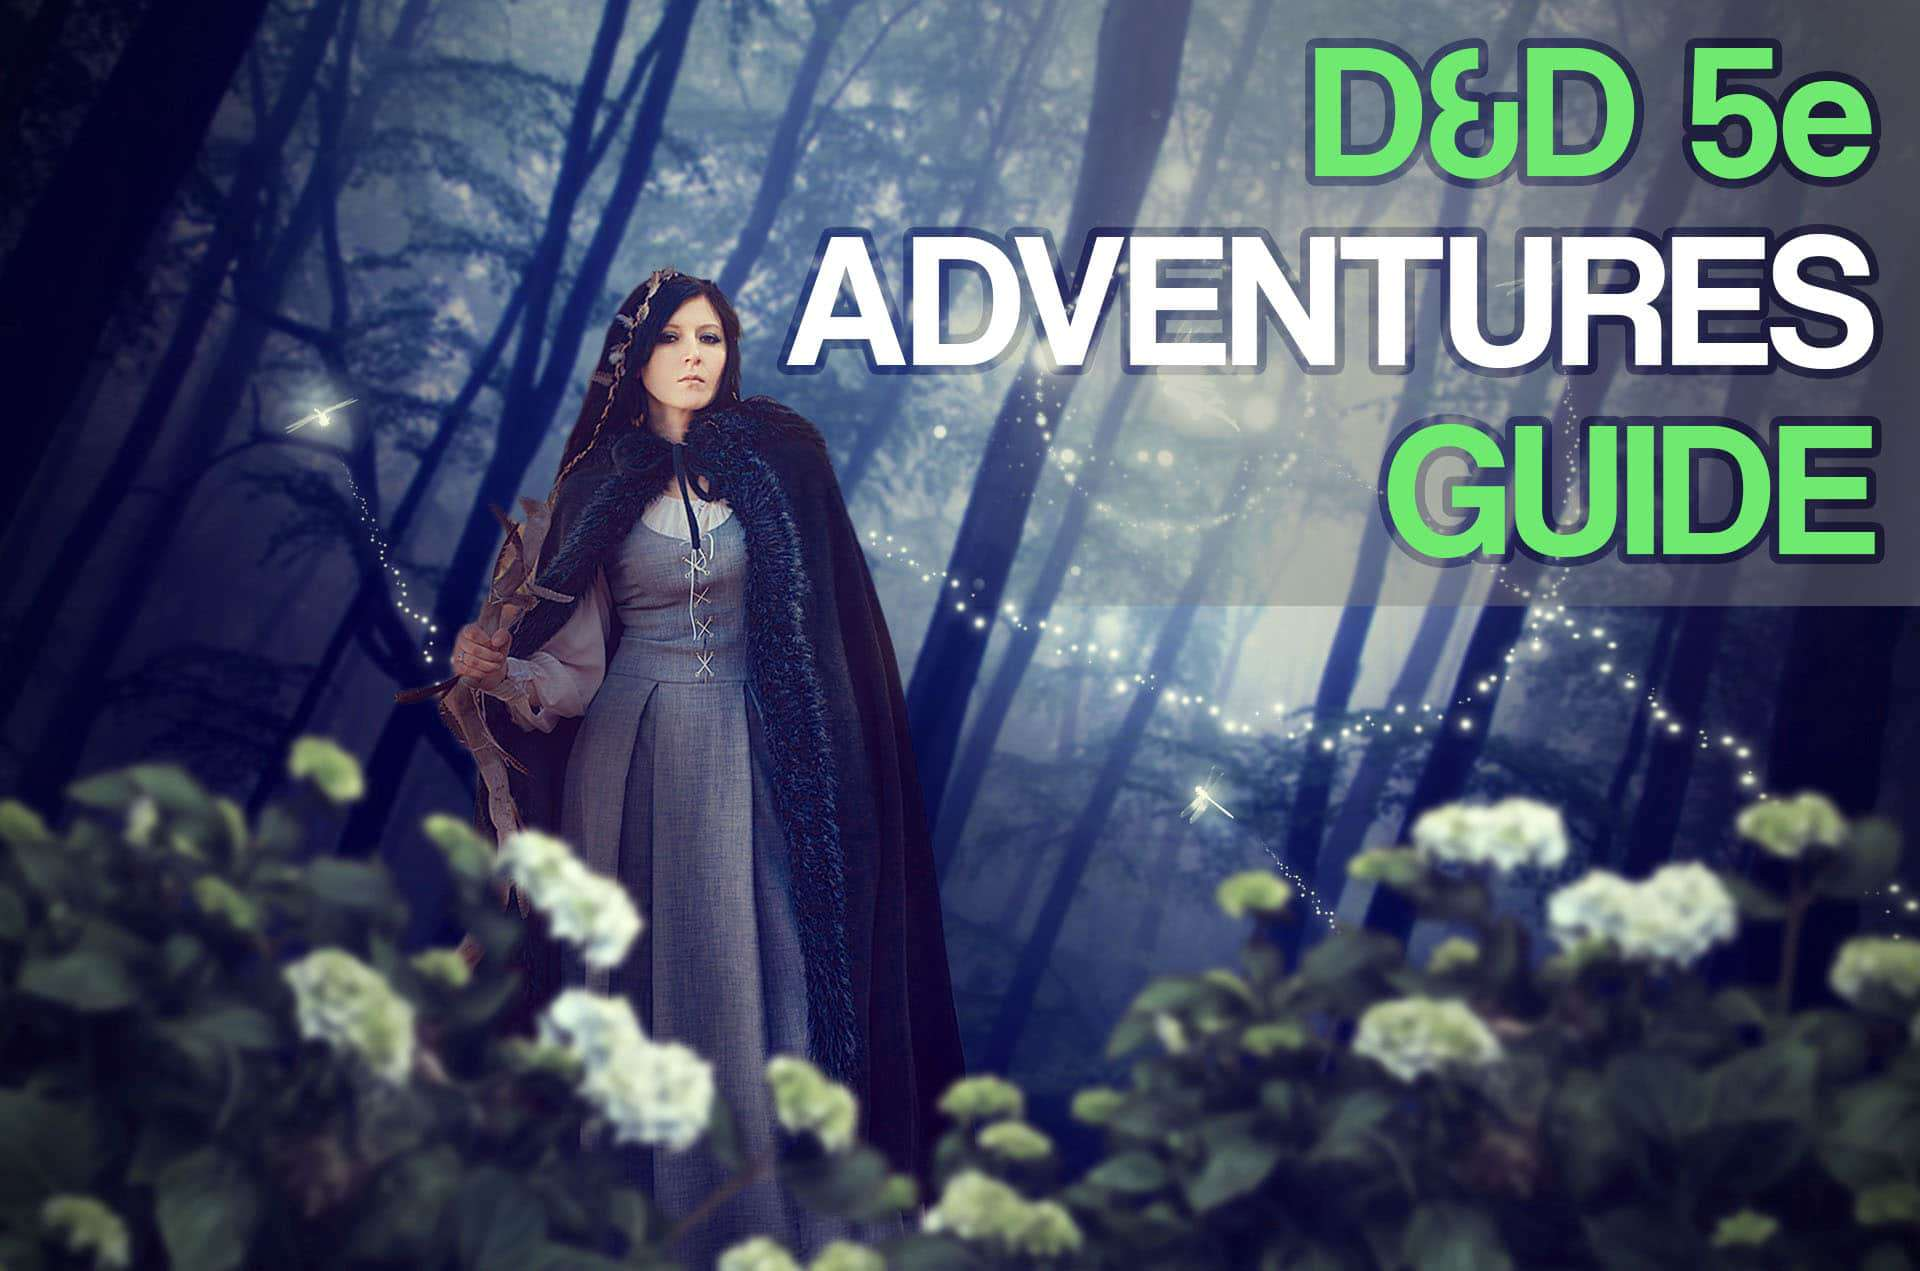 Guide to D&D 5e Adventures for 2019 (Officially Premade